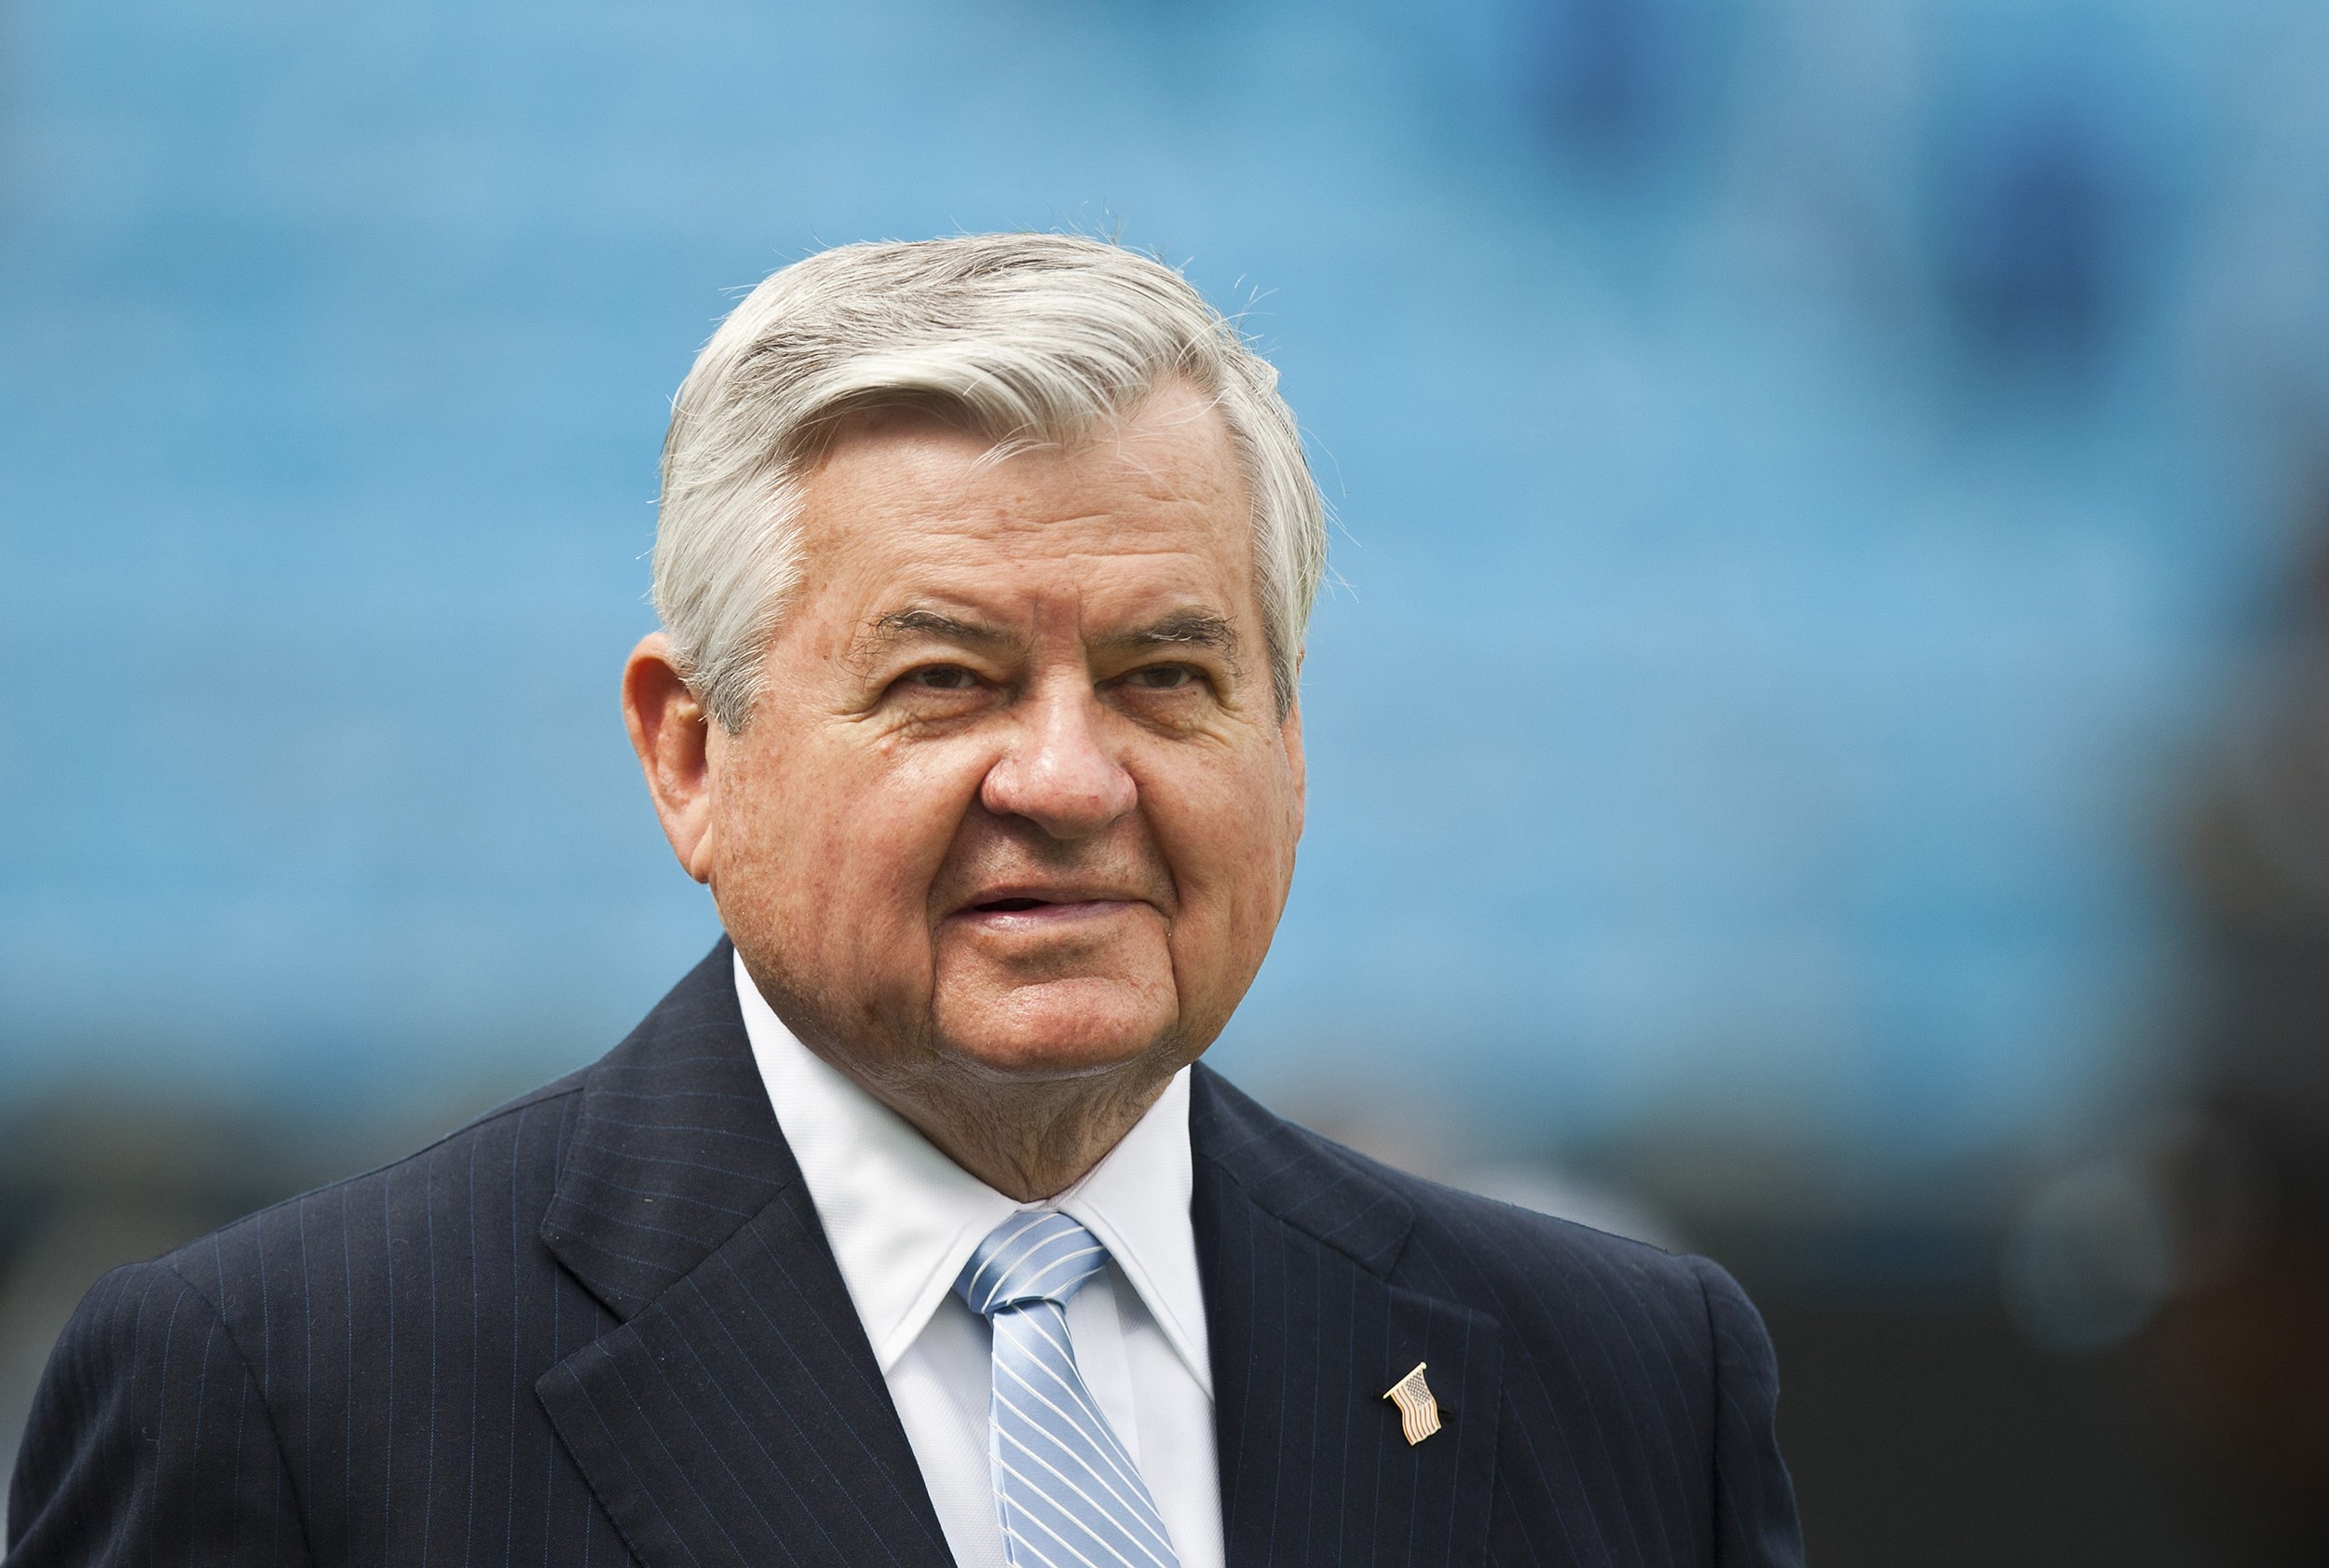 Image: Carolina Panthers team owner Jerry Richardson